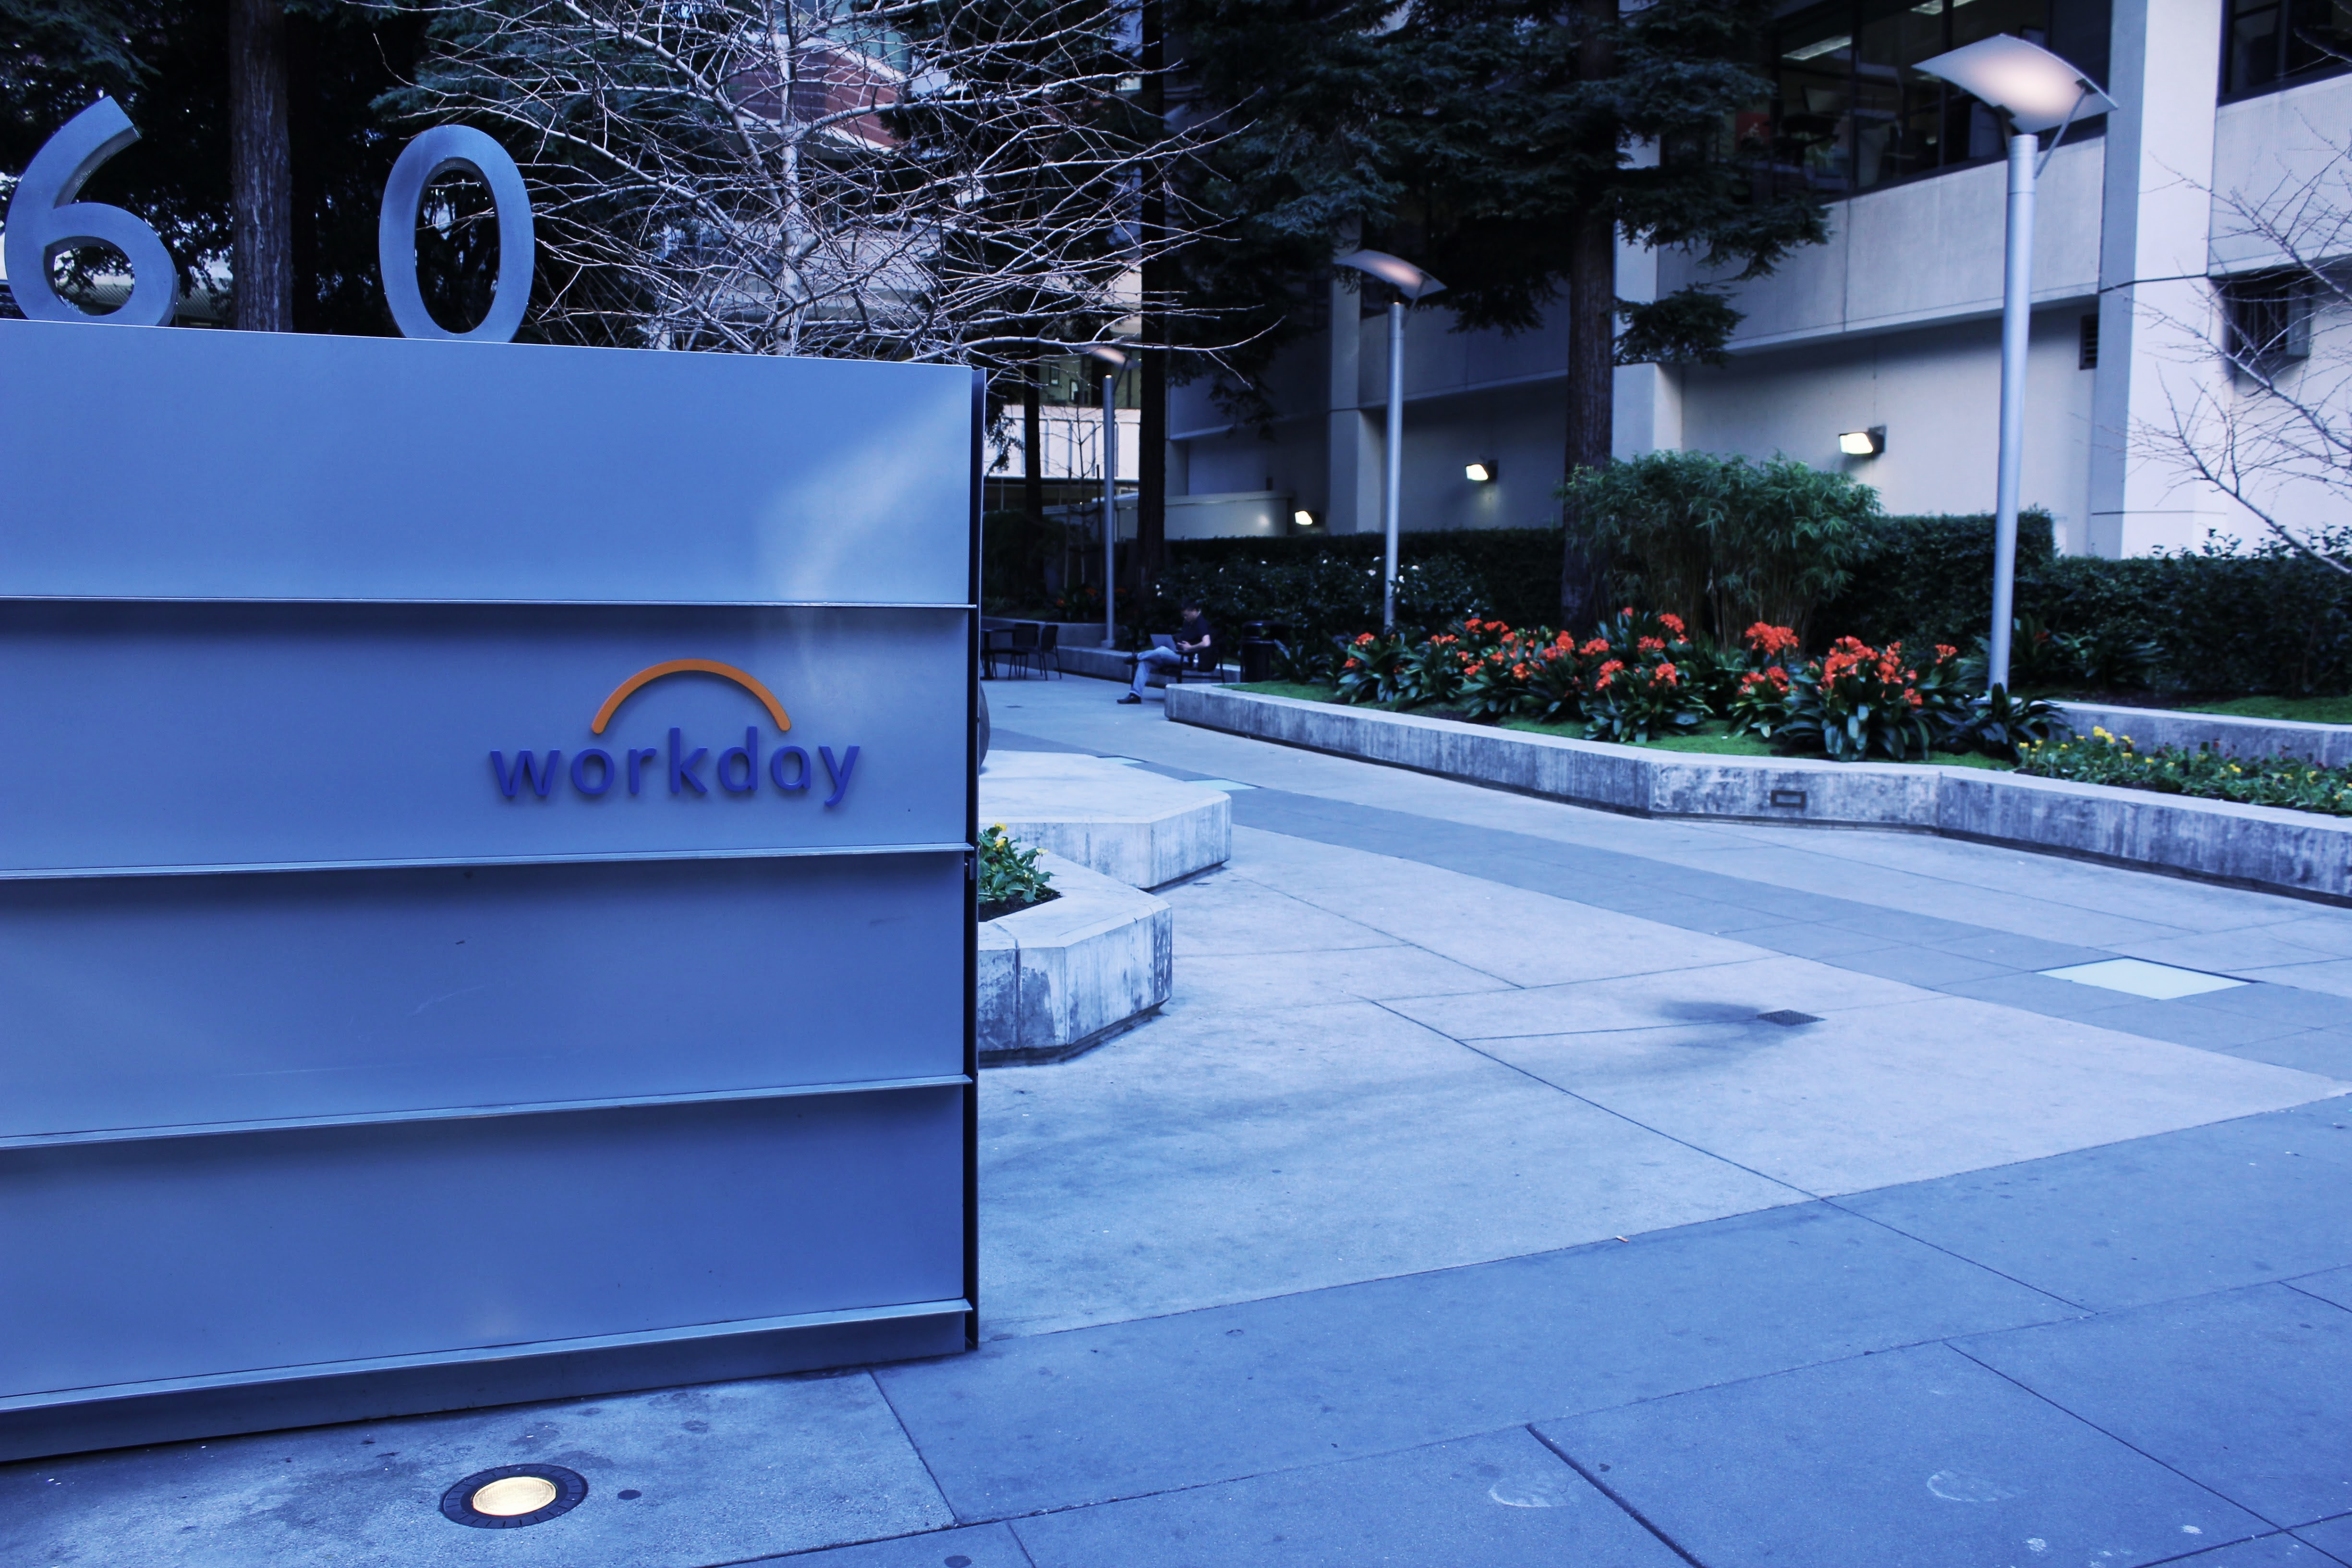 Workday acqu-hires Upshot, the startup that won controversial $1M